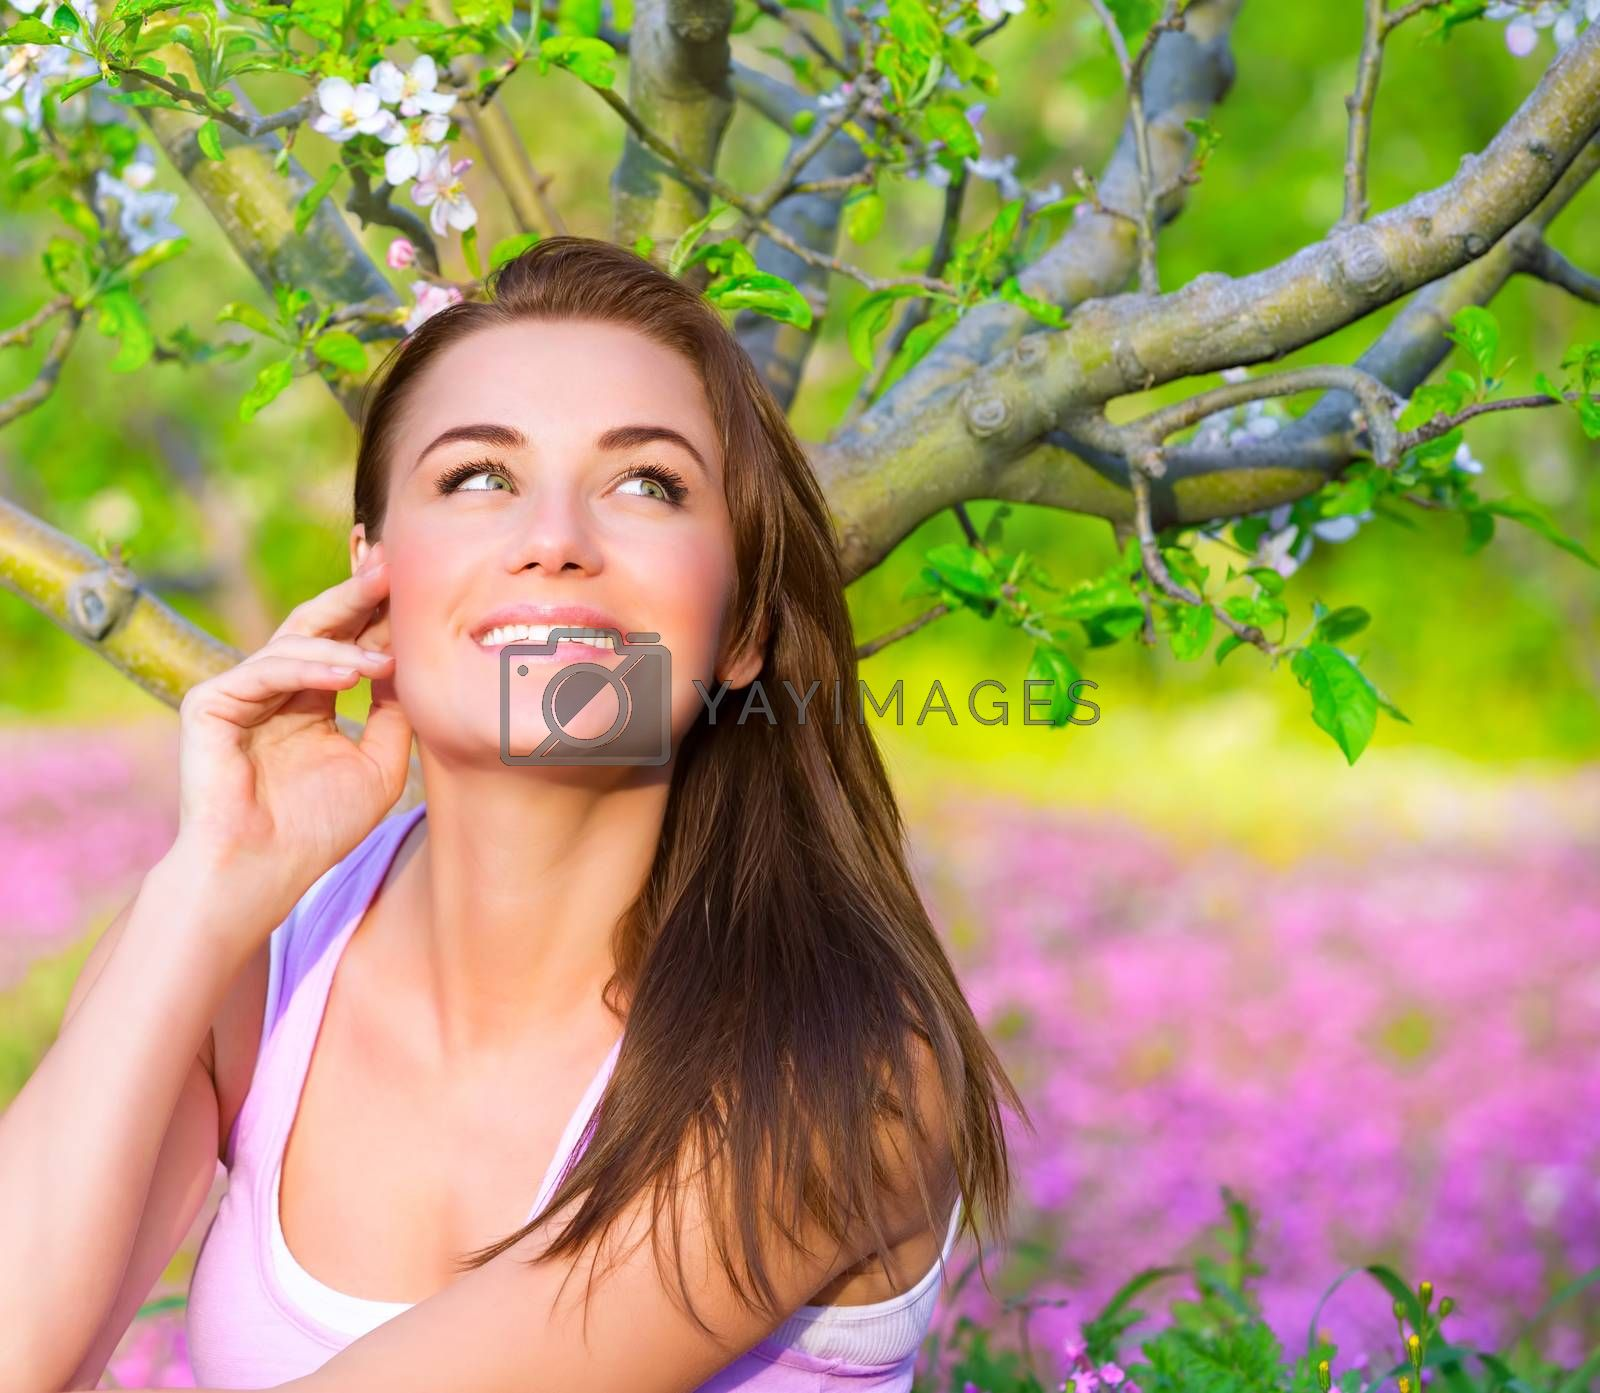 Royalty free image of Happy woman in blooming garden by Anna_Omelchenko